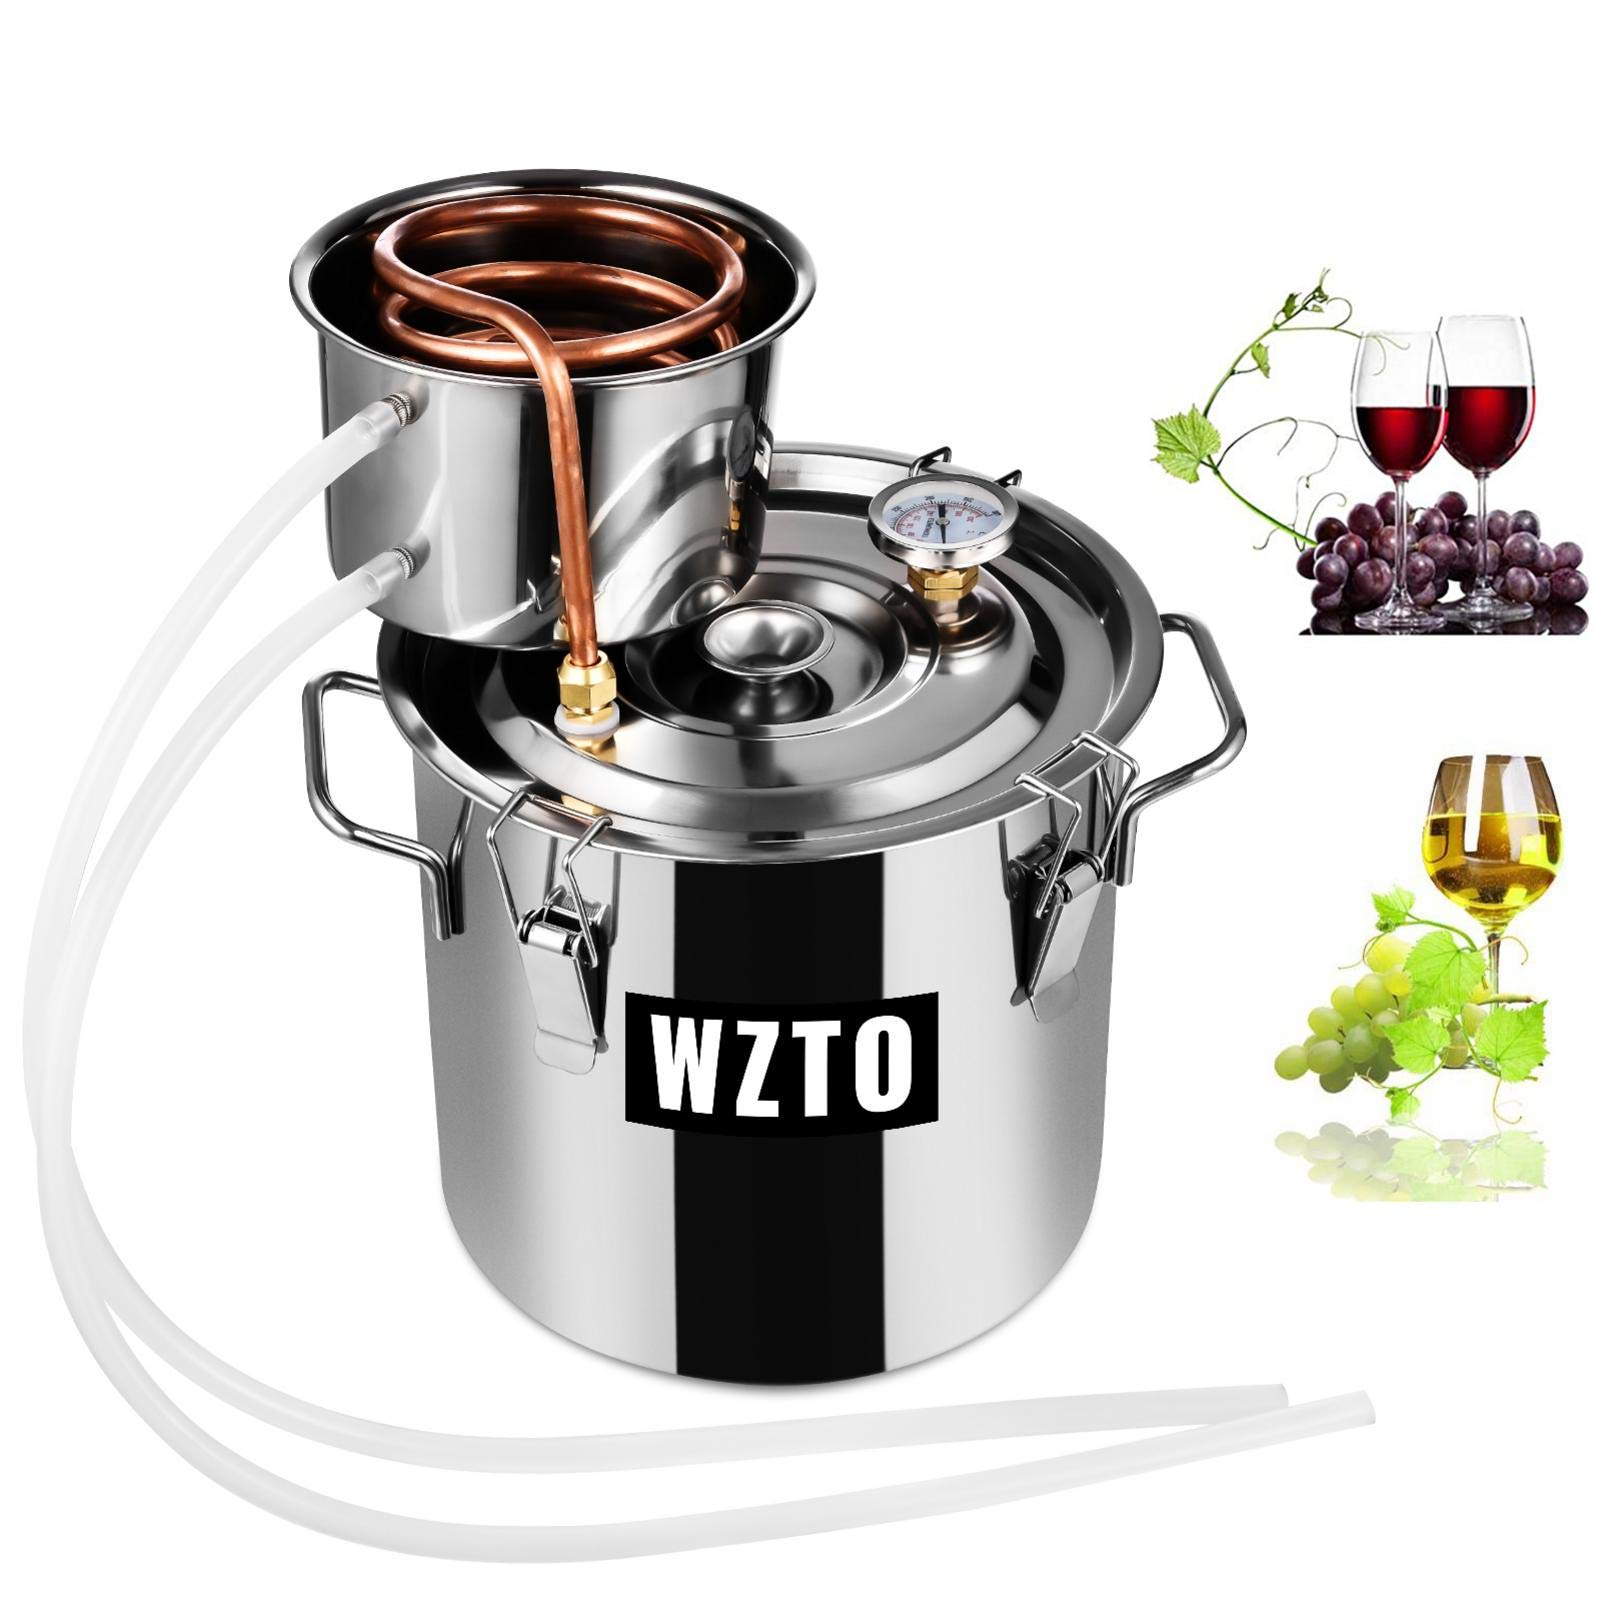 3GAL Moonshine Still Stainless Steel,Purifying Water Alcohol Distiller,Home Brew Wine Making Kits with Thumper,Home Brewing Kit Copper Tube for DIY Brandy Whisky Wine Essential Oils Hydrosols